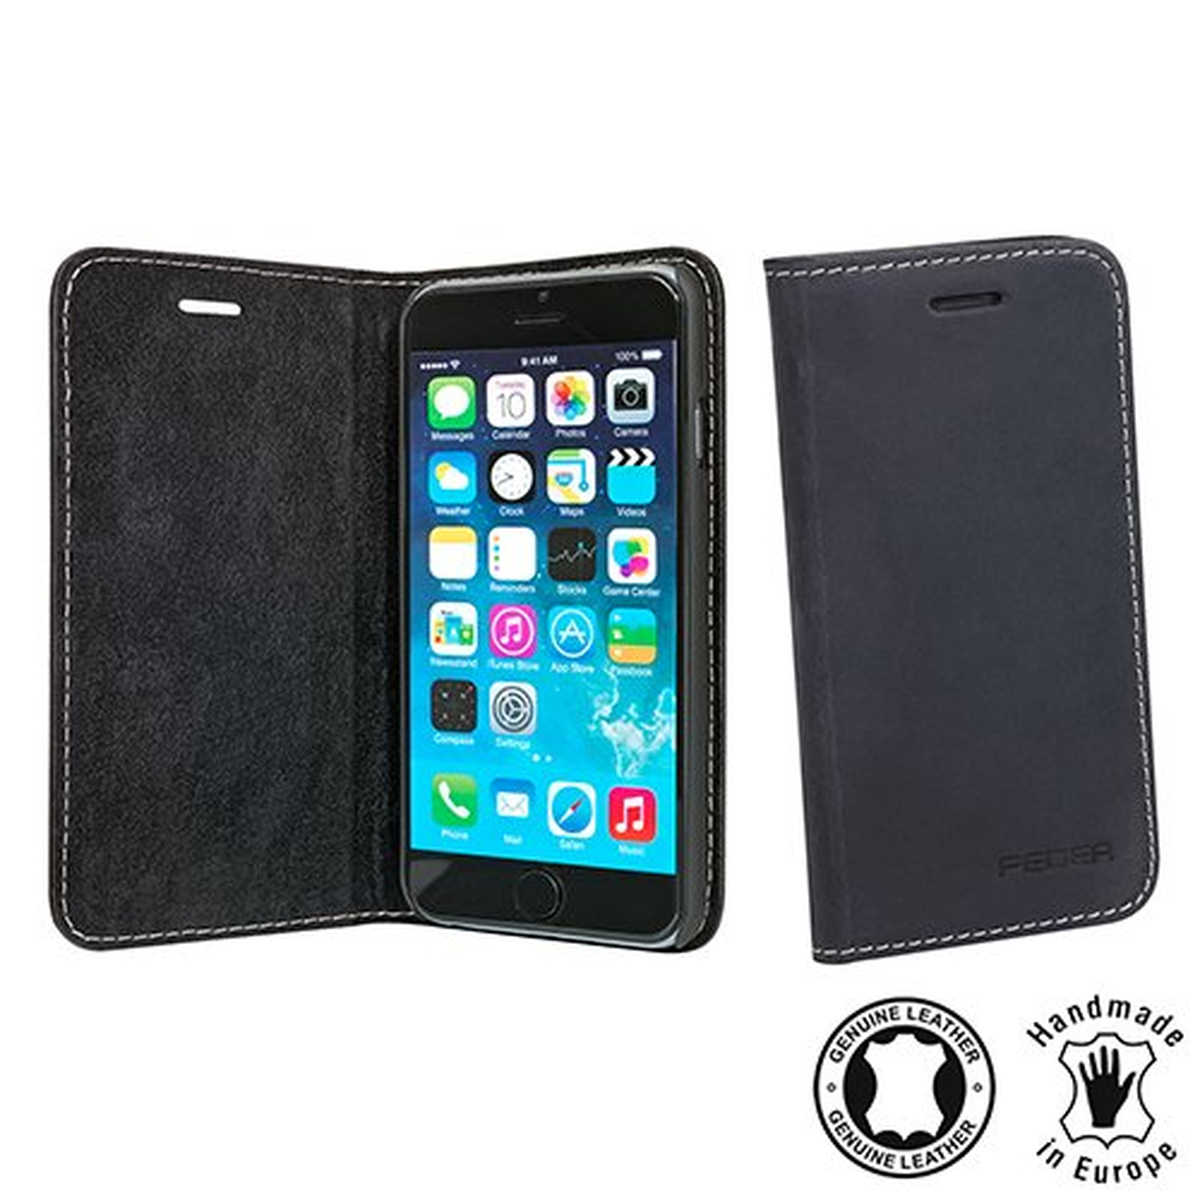 Pedea Echt Boston Tasche für Apple iPhone 6 anthrazit